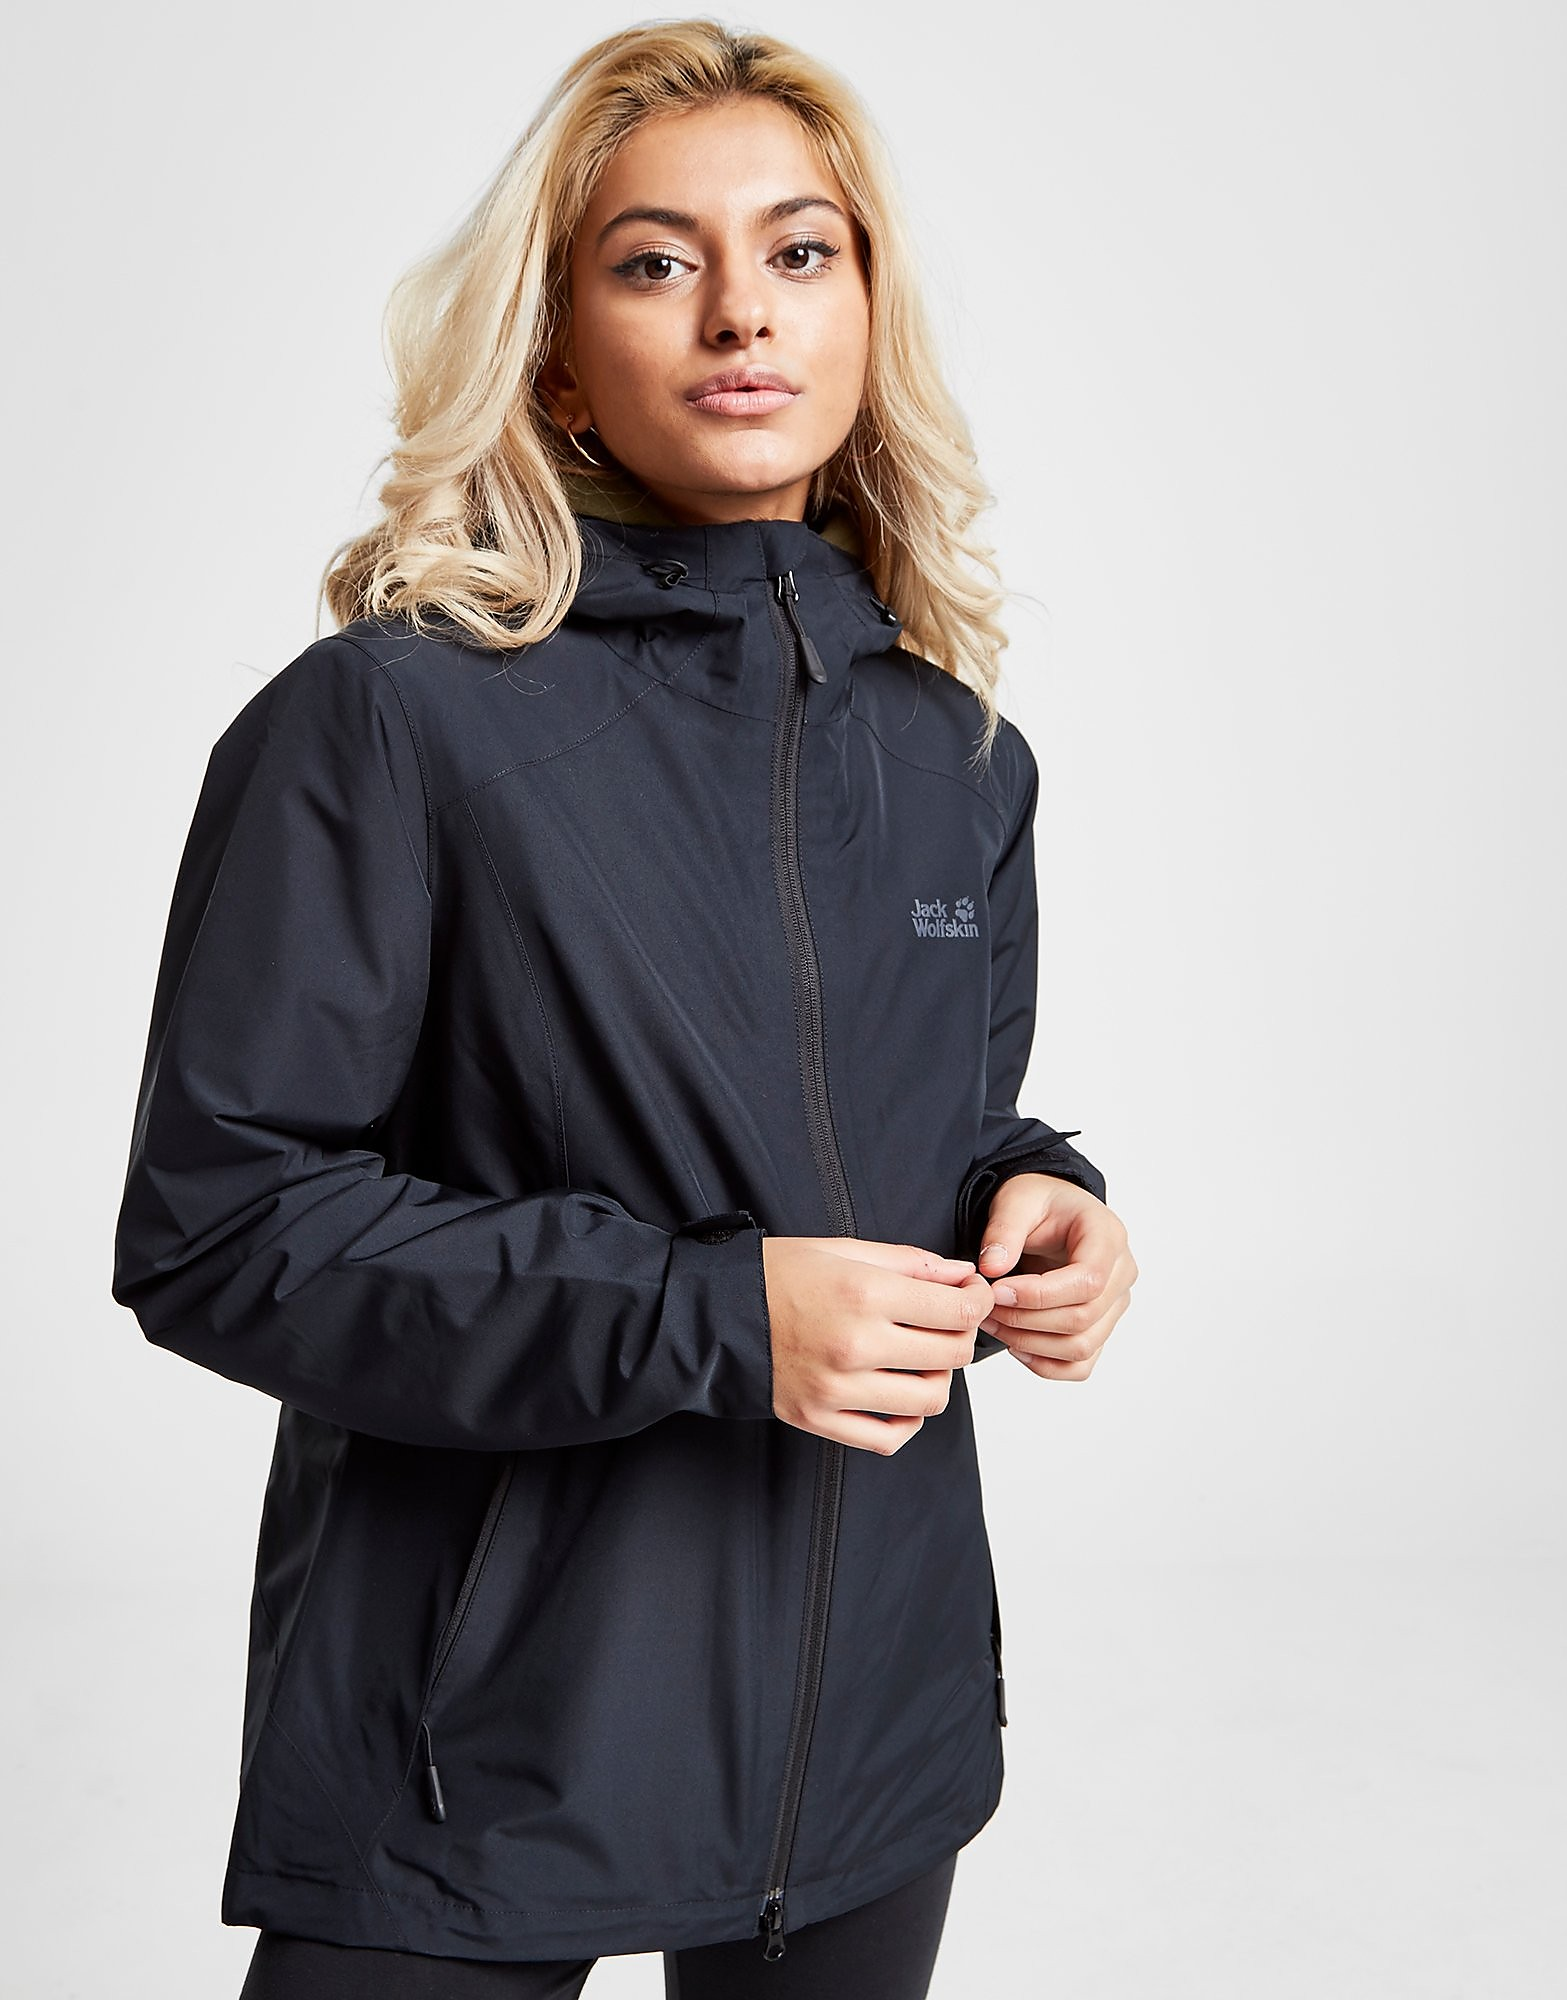 Jack Wolfskin Chilly Morning Jacket Dames - Zwart - Dames